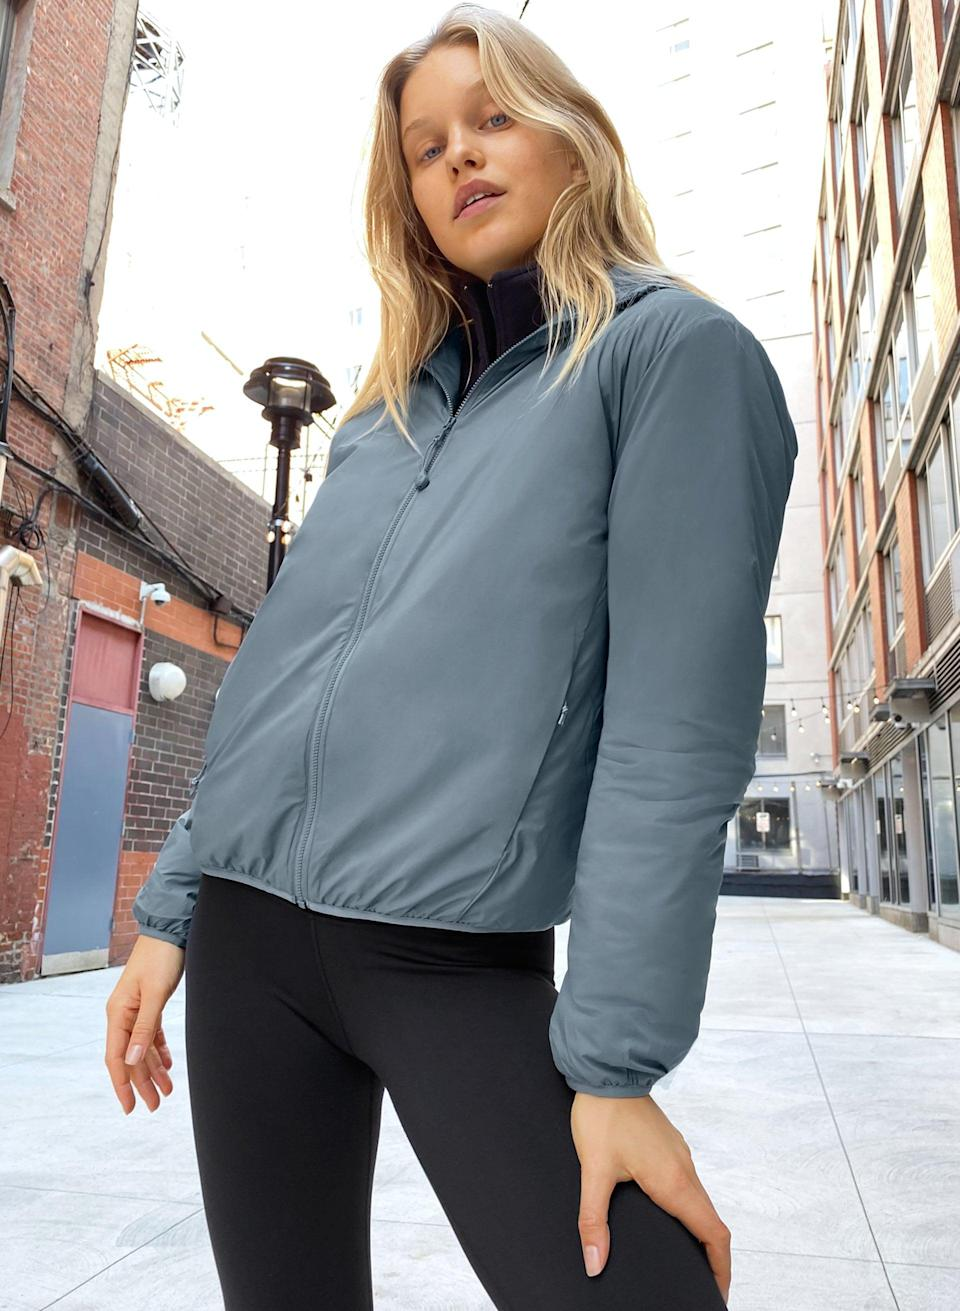 """<p><span>Aritzia Tna Pillow Puffer</span> ($110)</p> <p>""""I can't get enough of Artizia's warm and stylish puffer jackets and this TNA Pillow Puffer is a great lighter choice for California winters. It also comes in black, but I love the muted blue shade of this one."""" - Krista Jones, associate editor, shop</p>"""